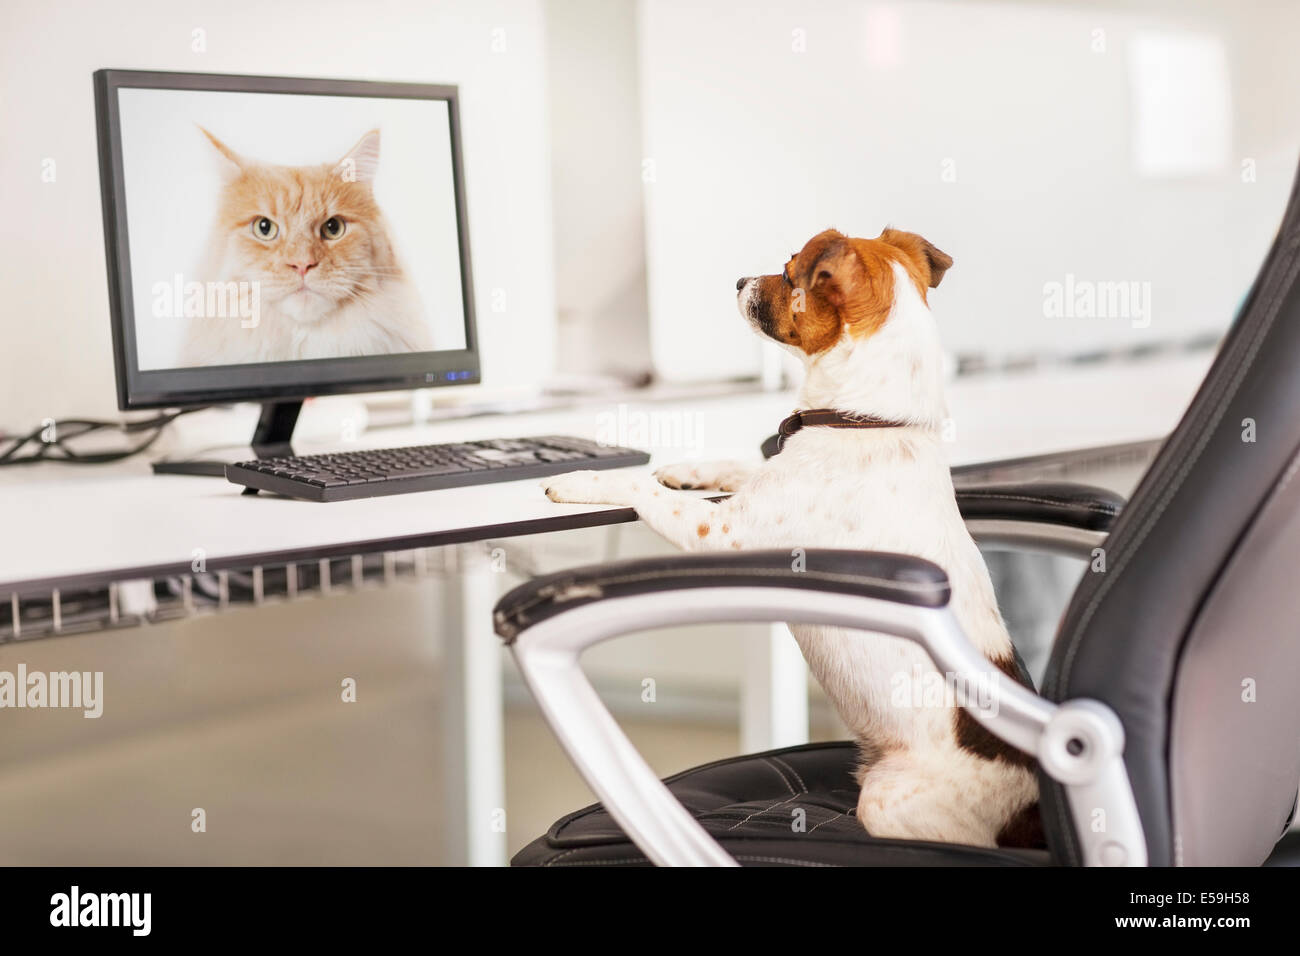 Dog sitting at desk in office - Stock Image